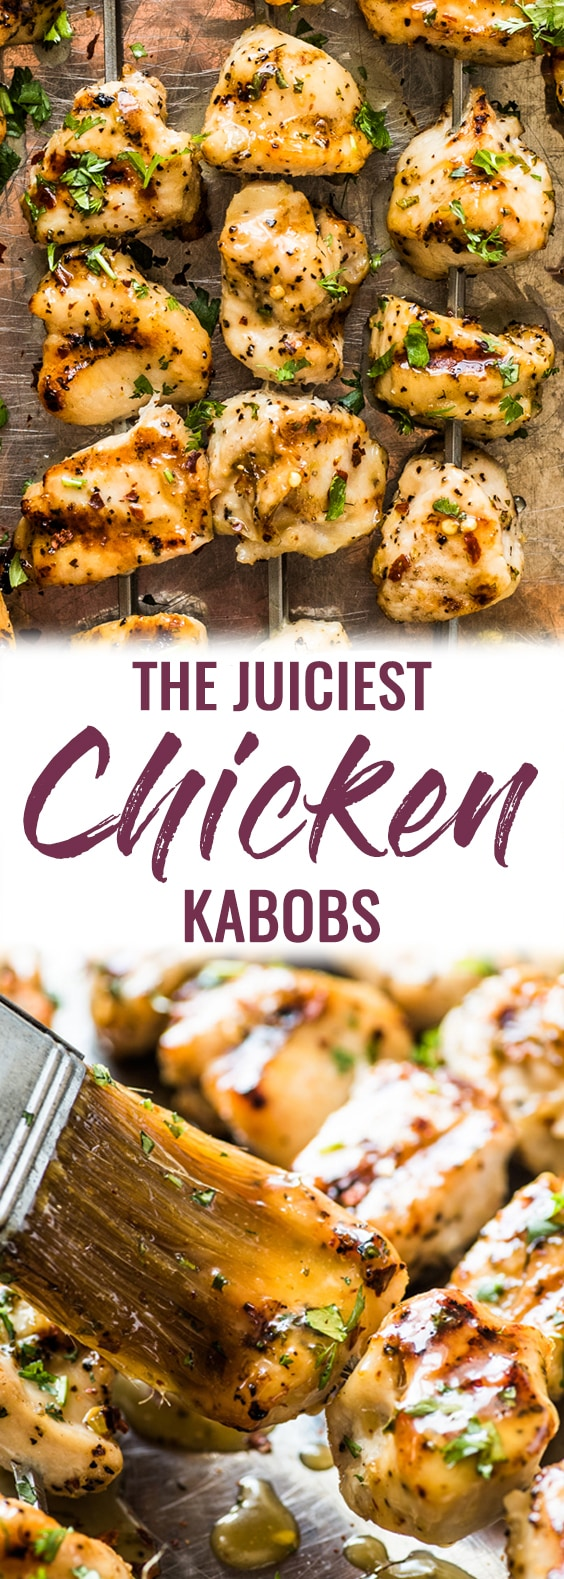 These easy Chicken Kabobs brushed with a honey lime sauce are juicy, tender and flavorful. No more dry or rubbery chicken! (gluten free, paleo, clean eating, skinny) #kabobs #skewers #grilledchicken